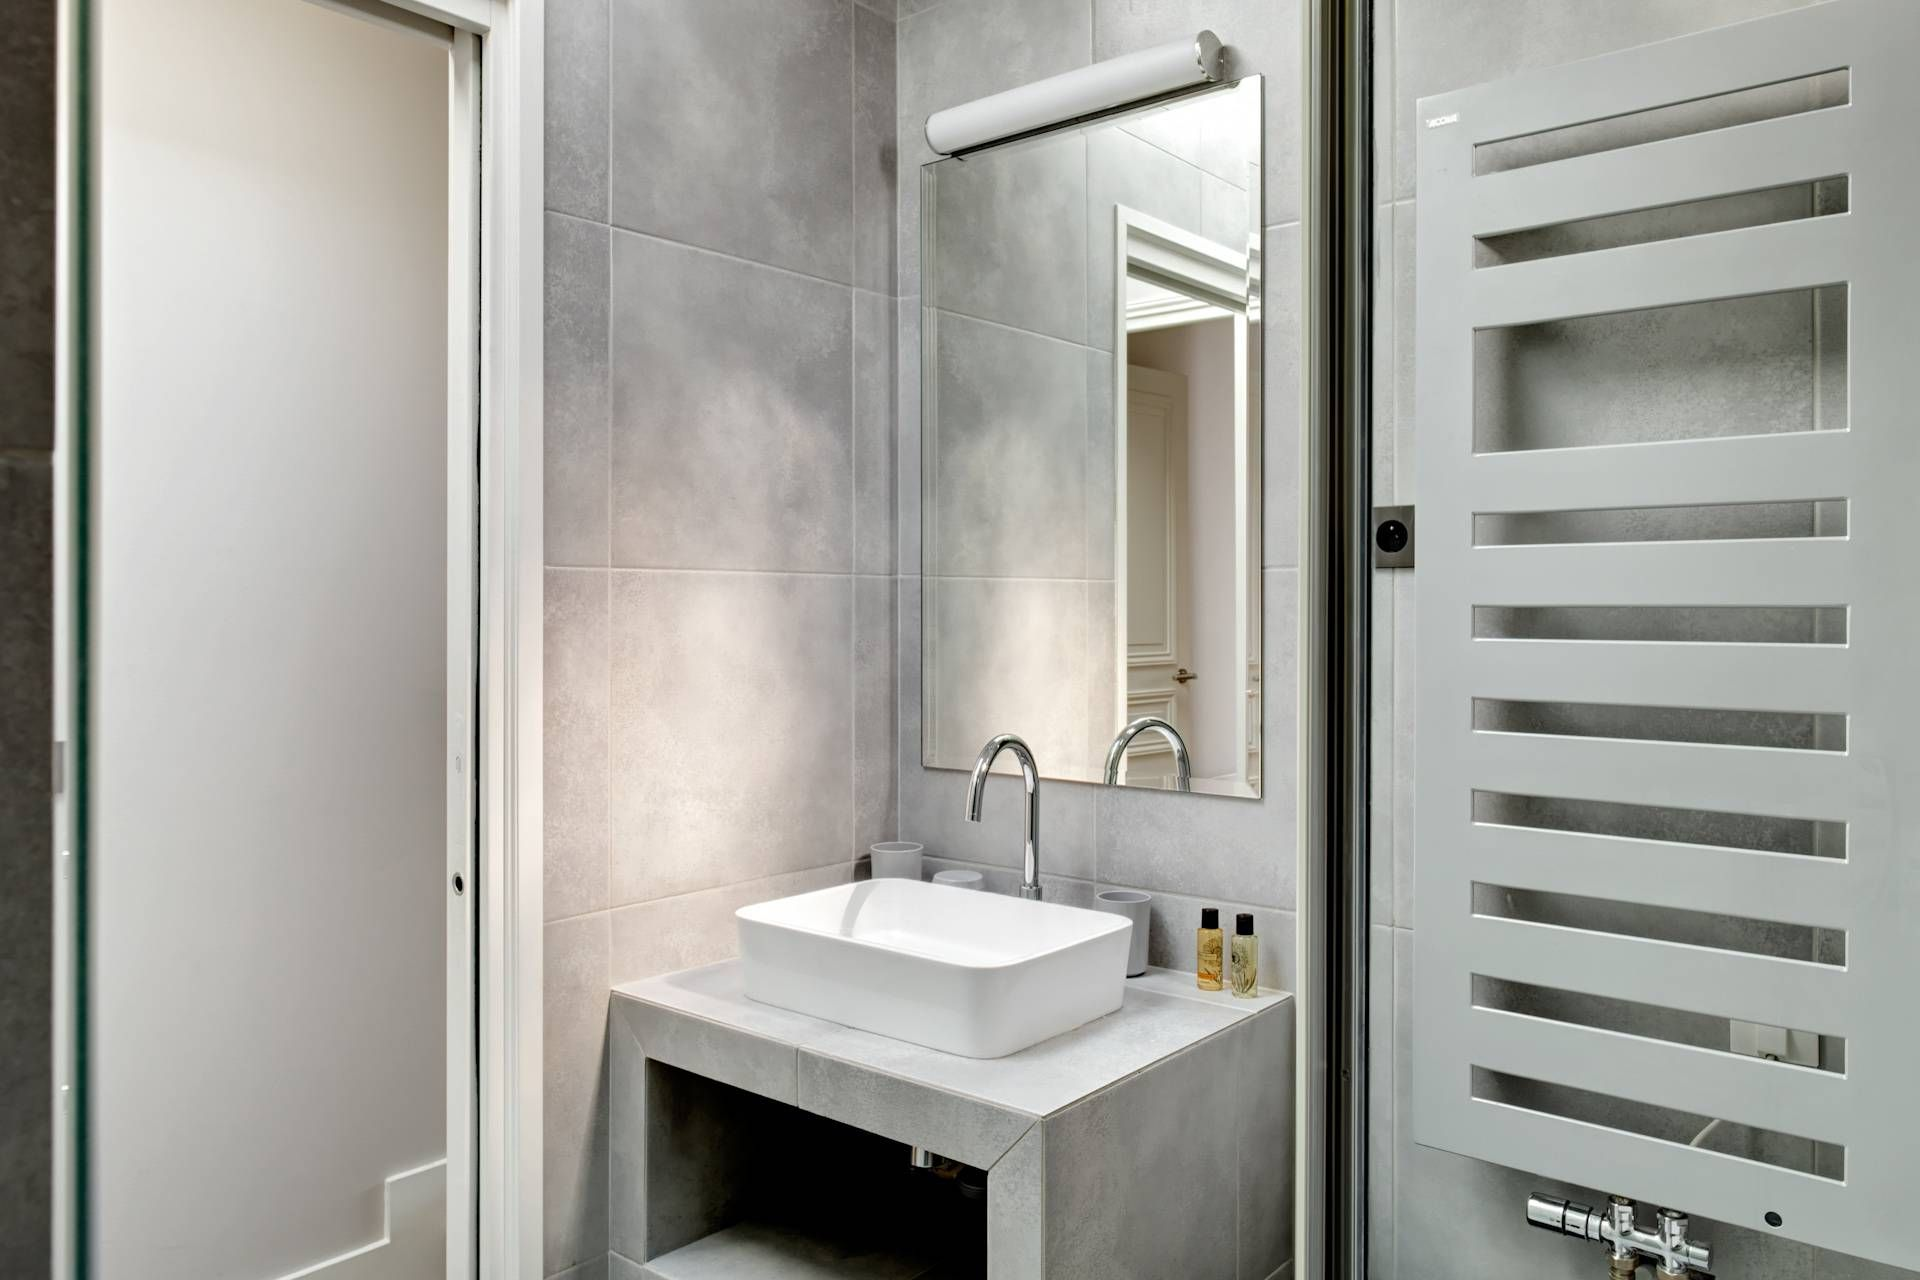 Having a French stay in modern style bathroom.  More information on our website.   #Paris #apartment #decoration #bathroom #travel